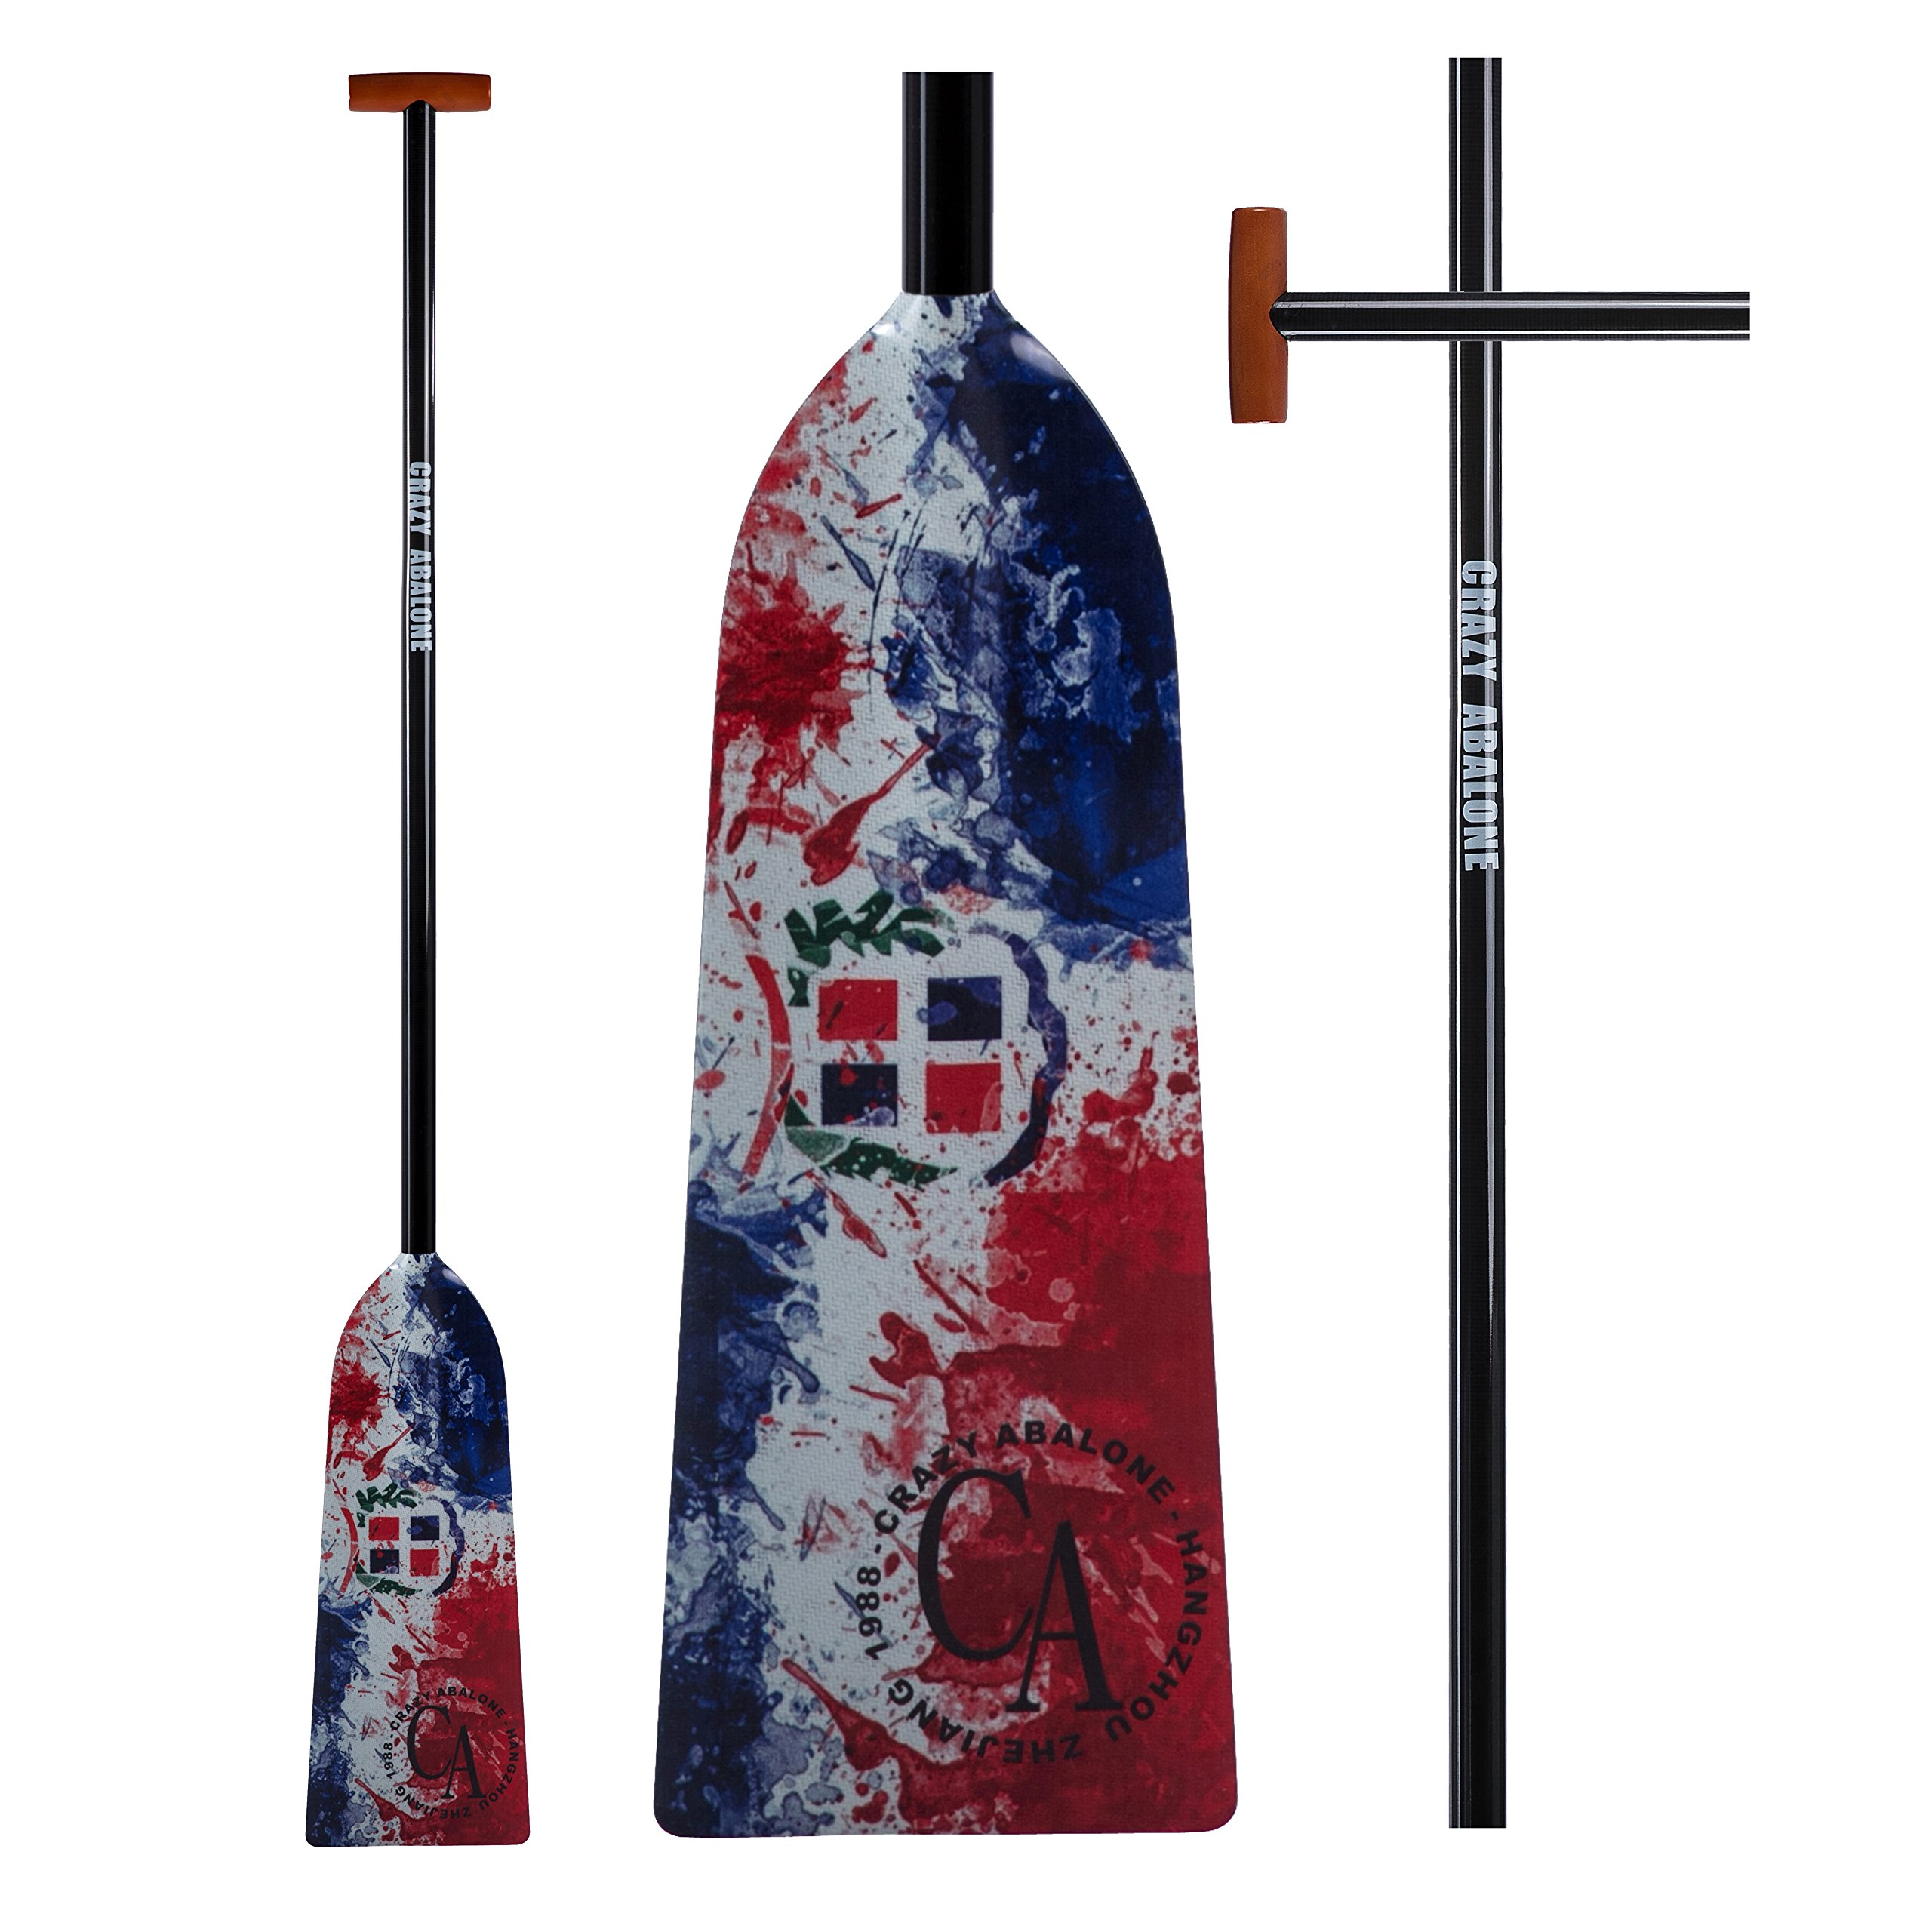 CRAZY ABALONE Sport IDBF Approved Carbon Fiber Splash Ink Dragon Boat,Hybrid Paddle with T Handle by CRAZY ABALONE